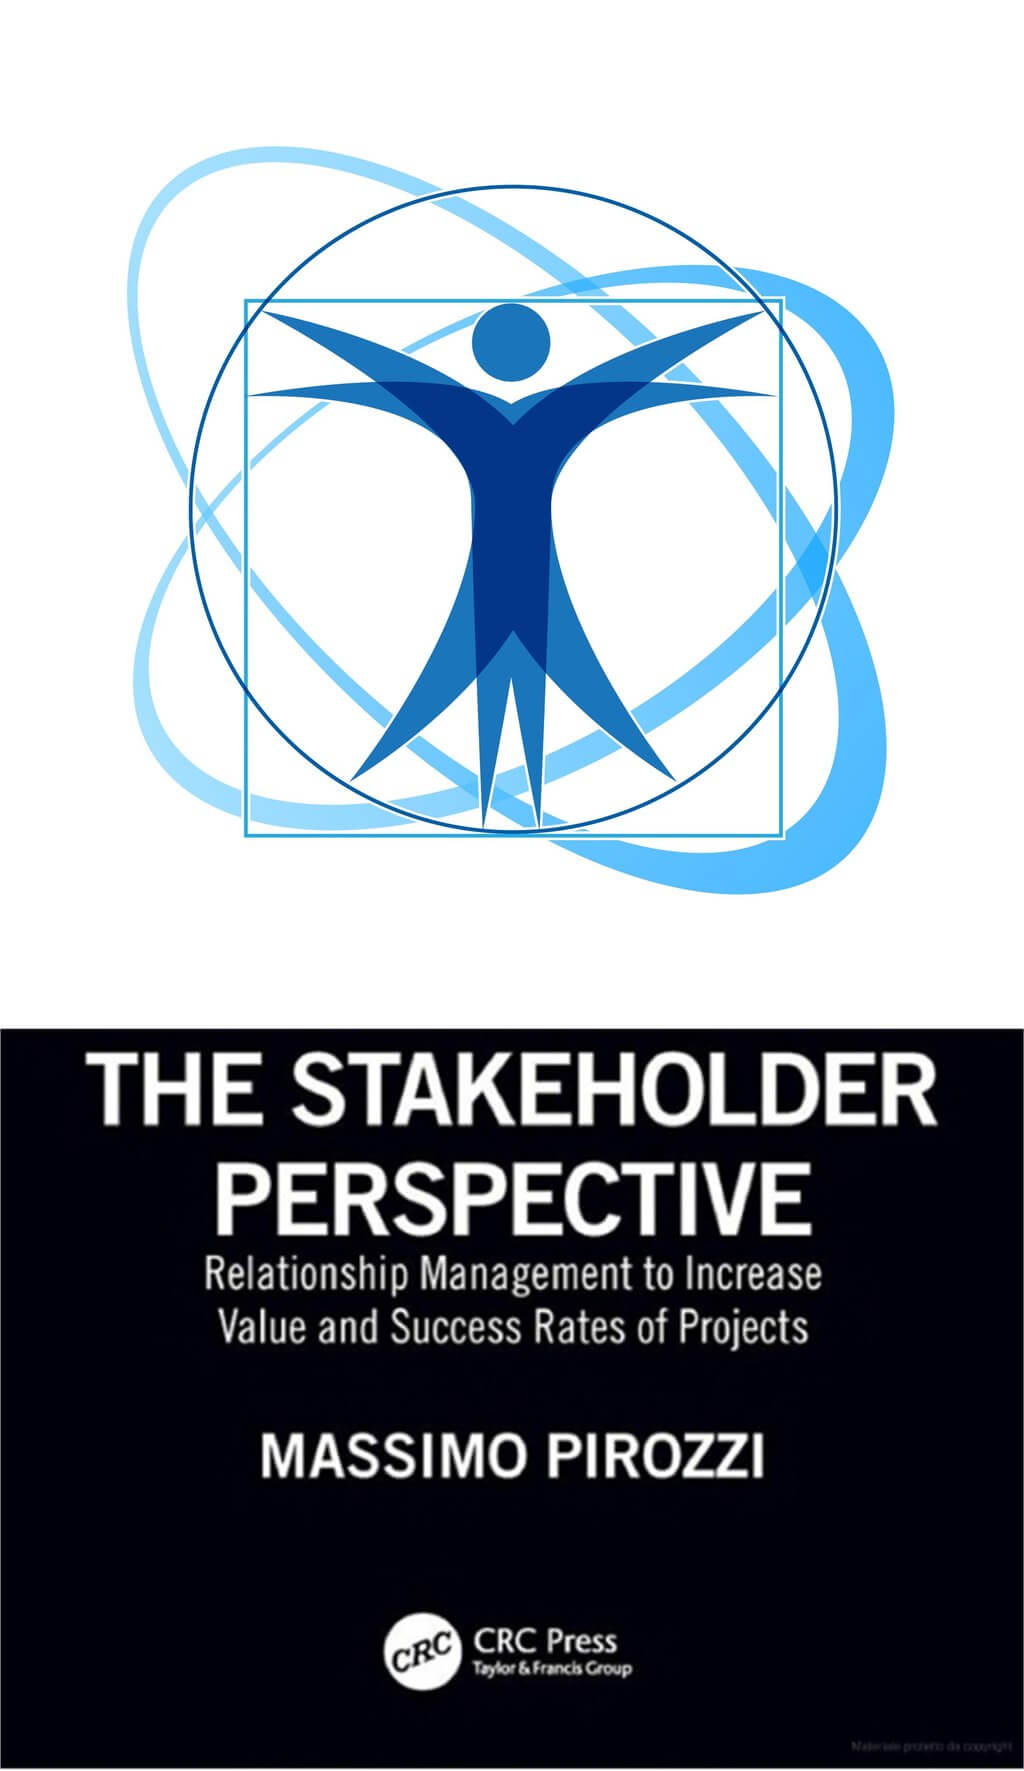 the stakeholder perspective copertina